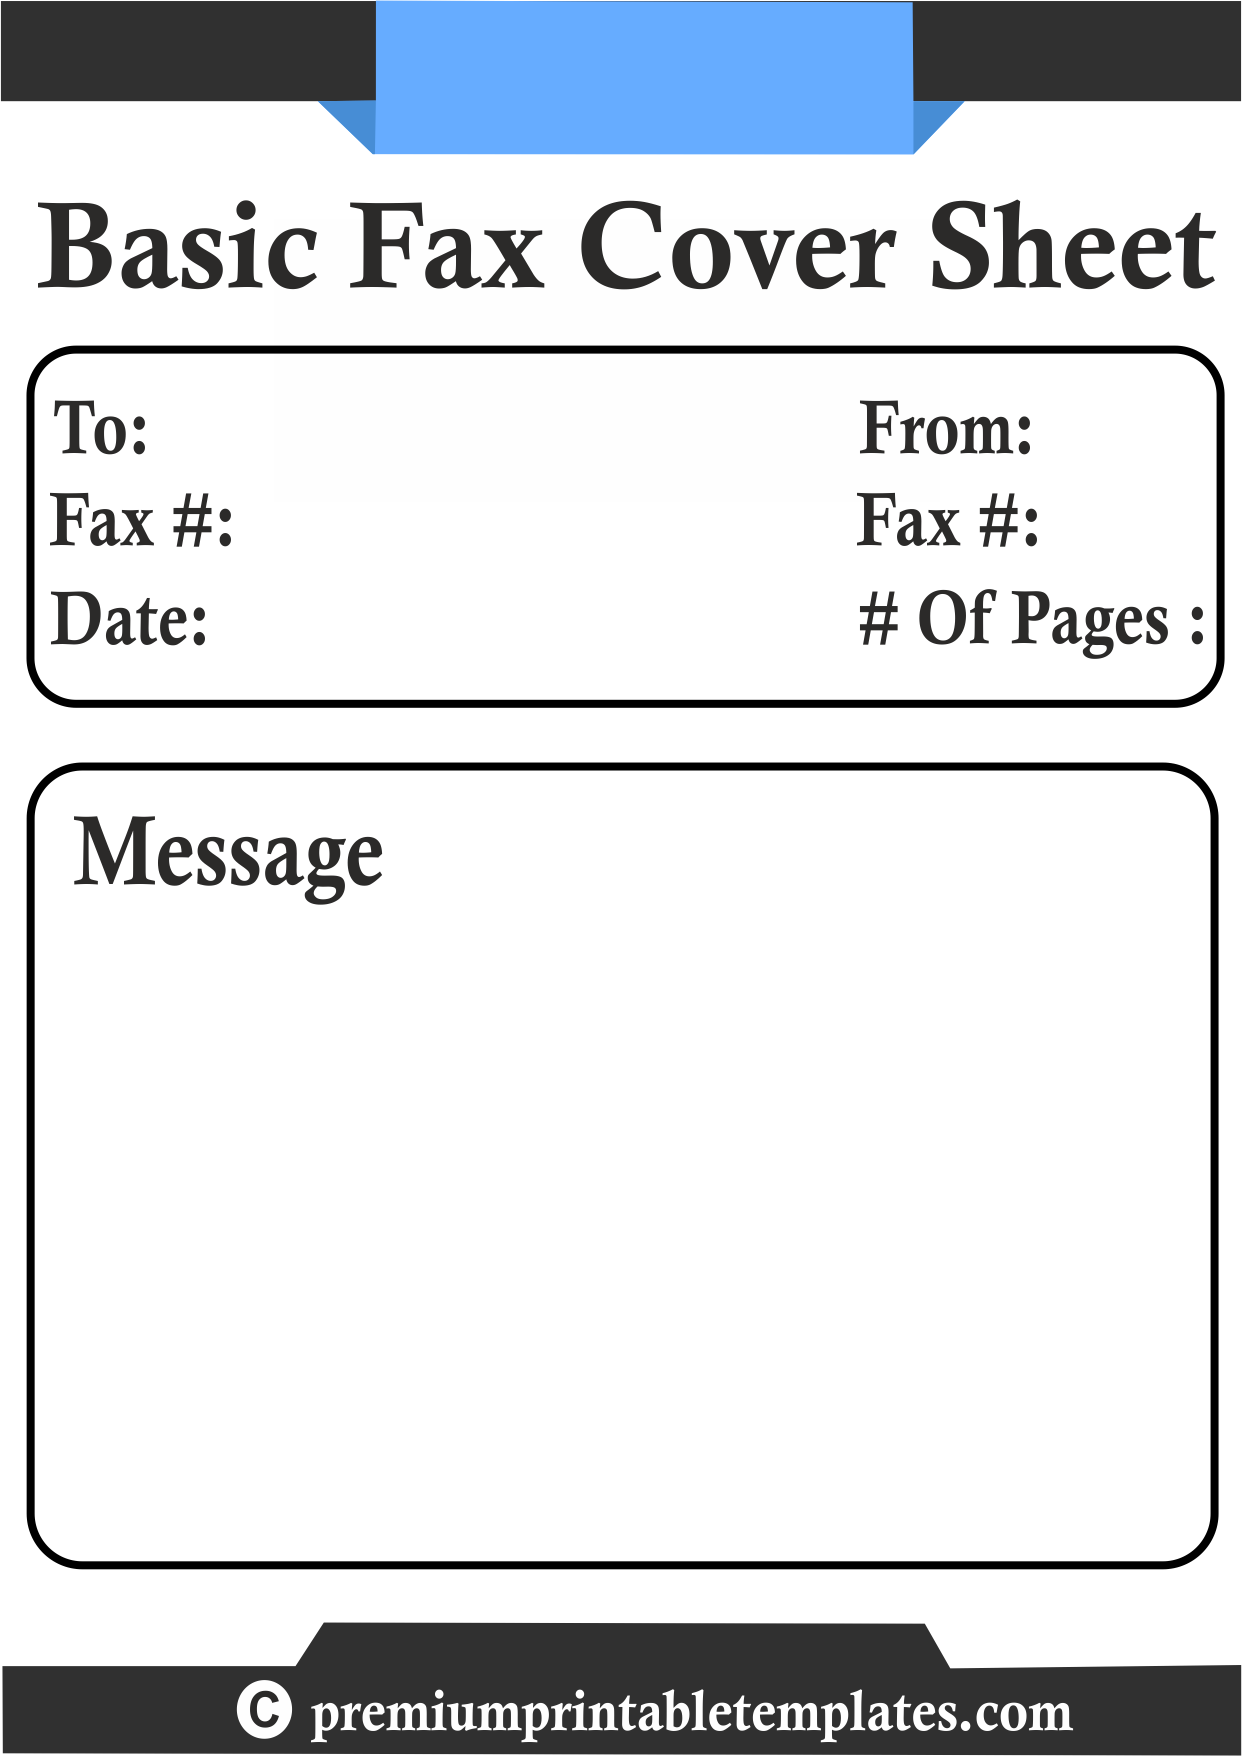 Fax Cover Sheets Templates A Fax Cover Sheet Is An Attached Document Which Is Sent To Your Fax .